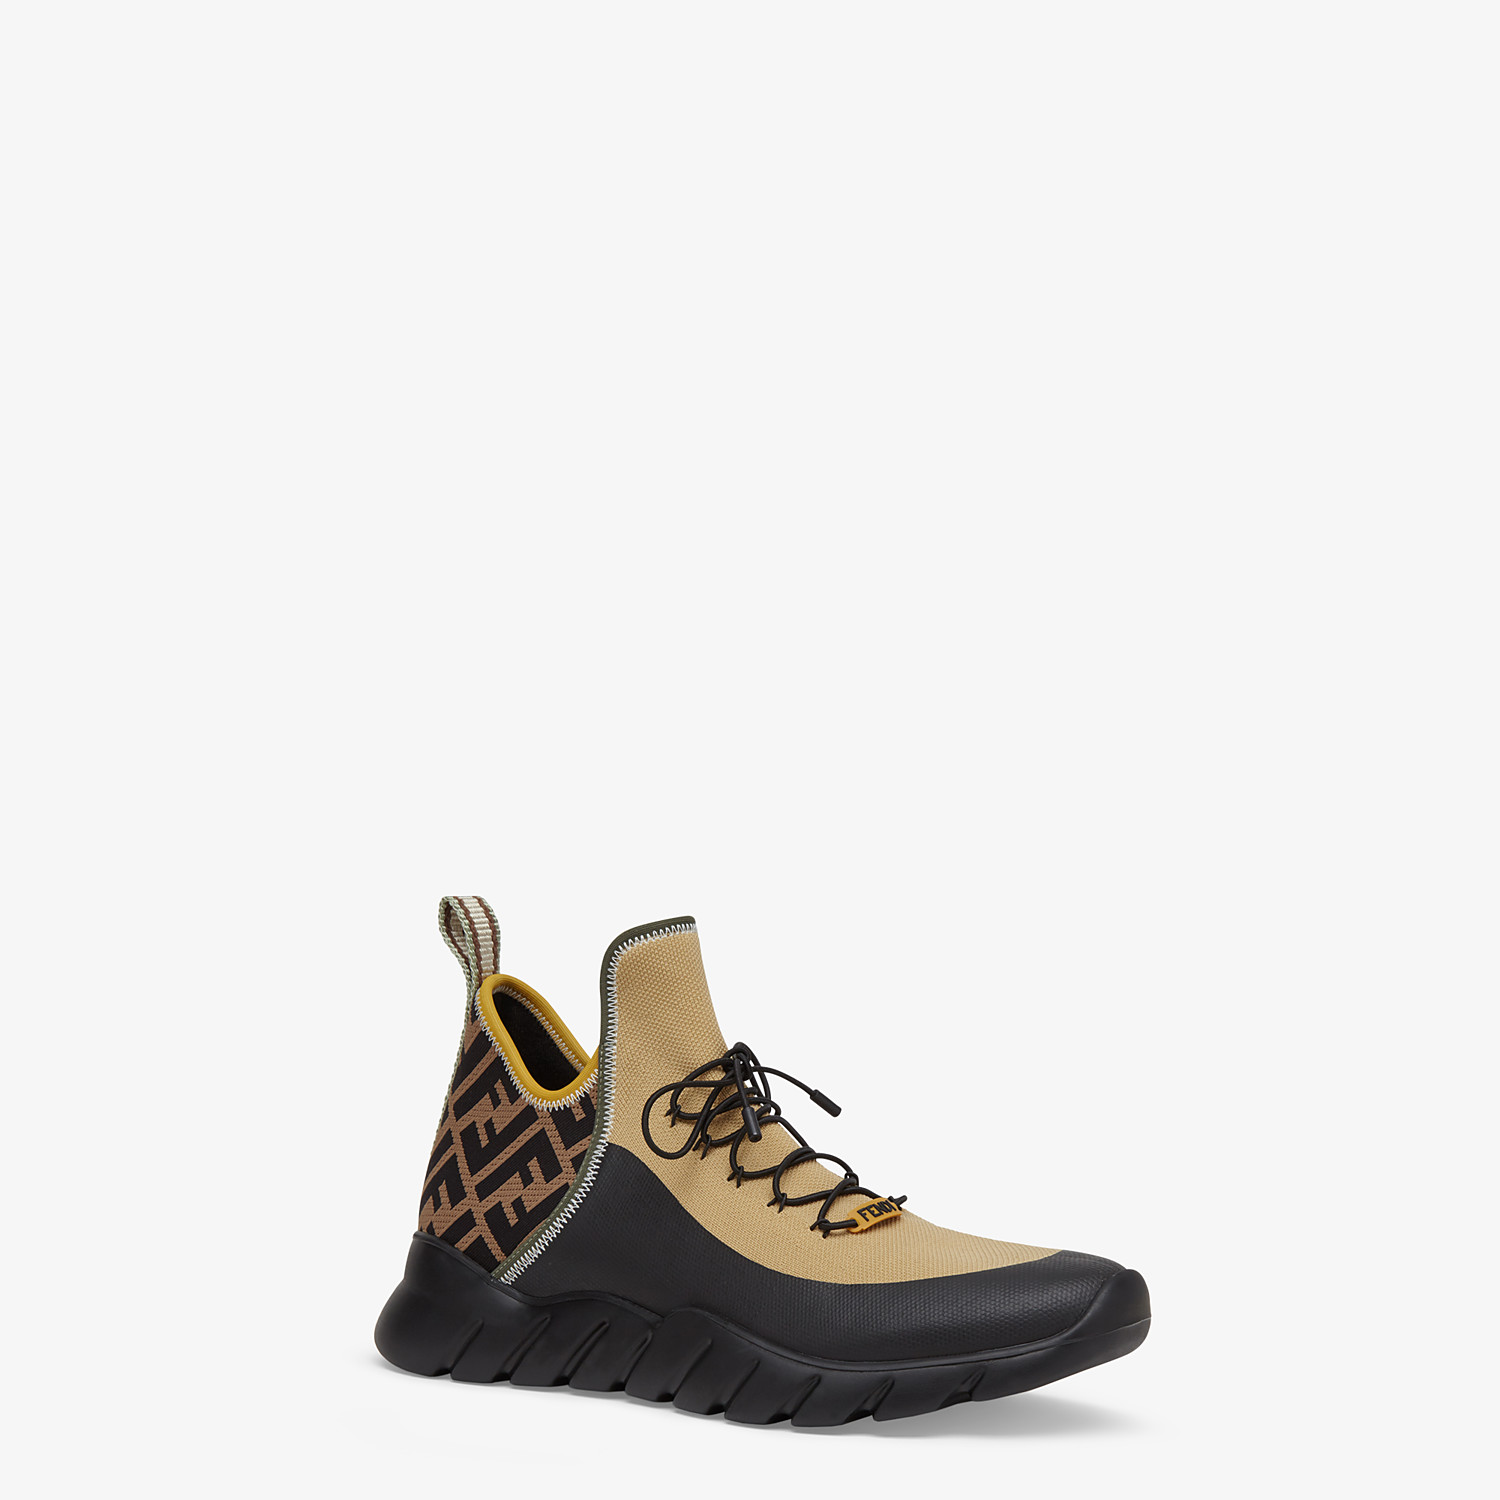 FENDI SNEAKERS - Multicolor tech knit high-tops - view 2 detail